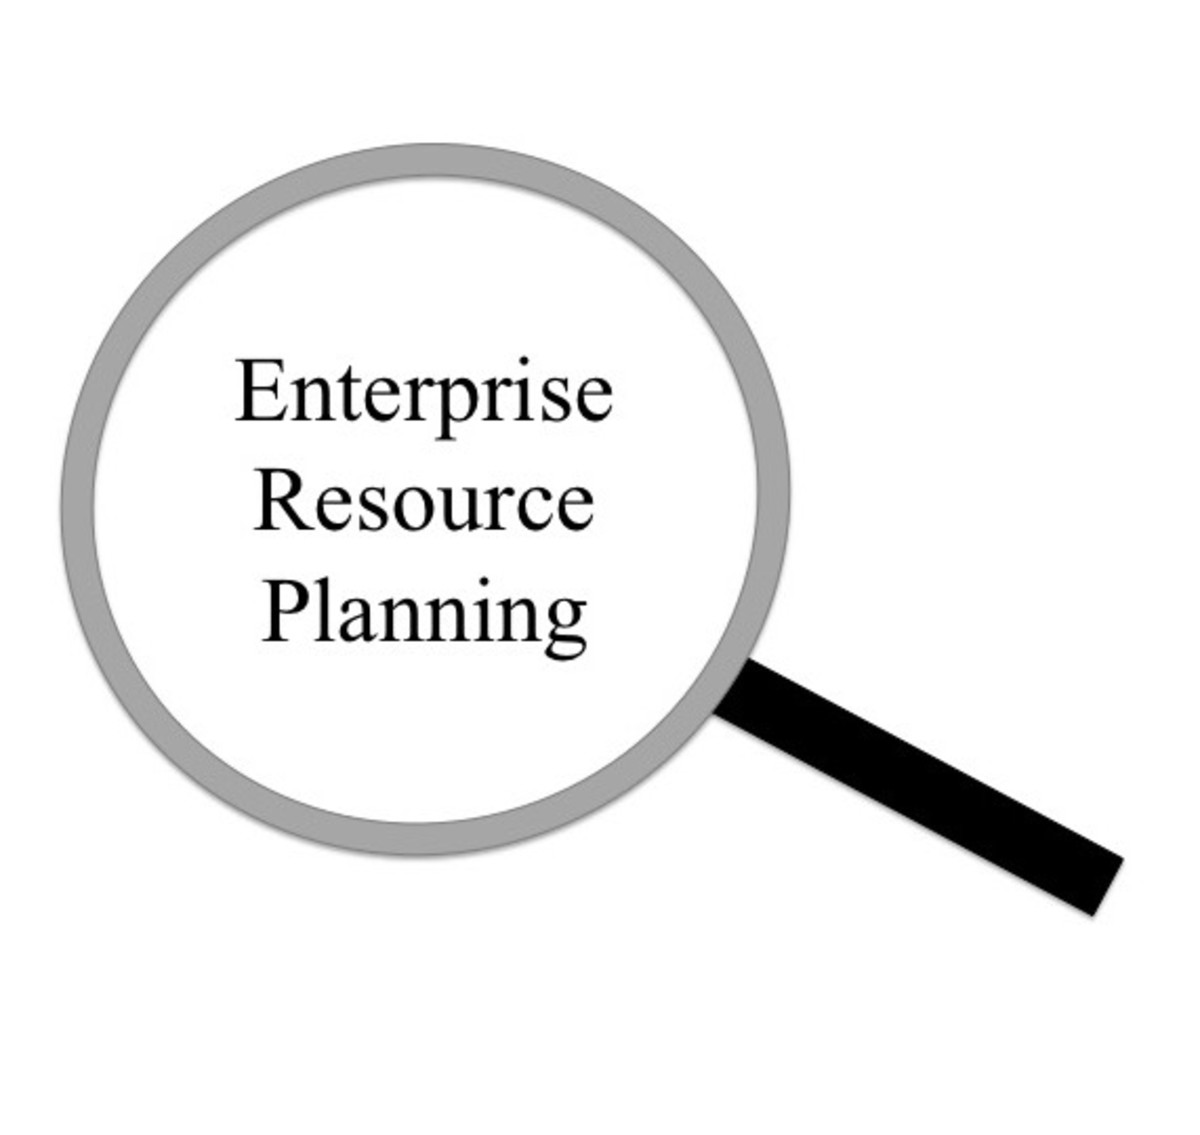 Enterprise Resource Planning (ERP) and Fortune 500 Companies